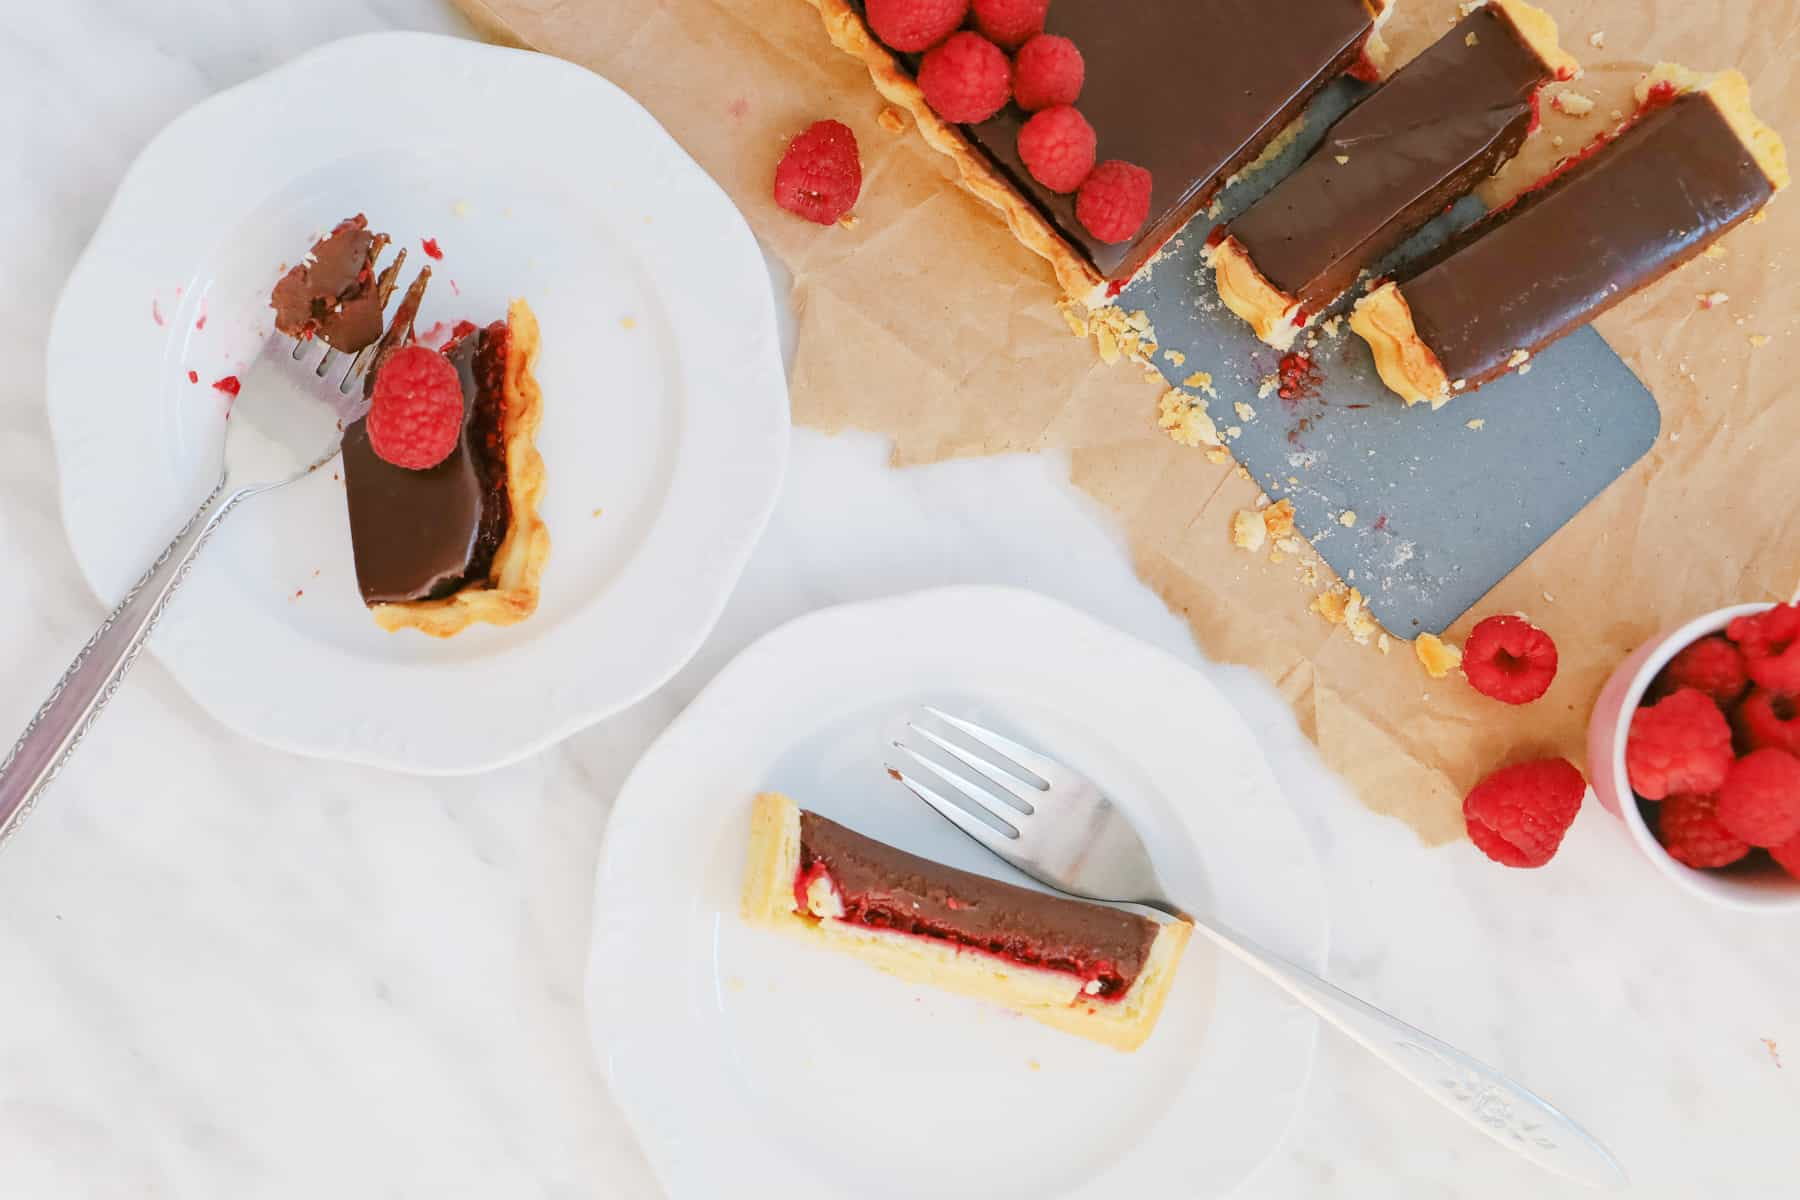 Overhead shot of serving a chocolate tart on plates